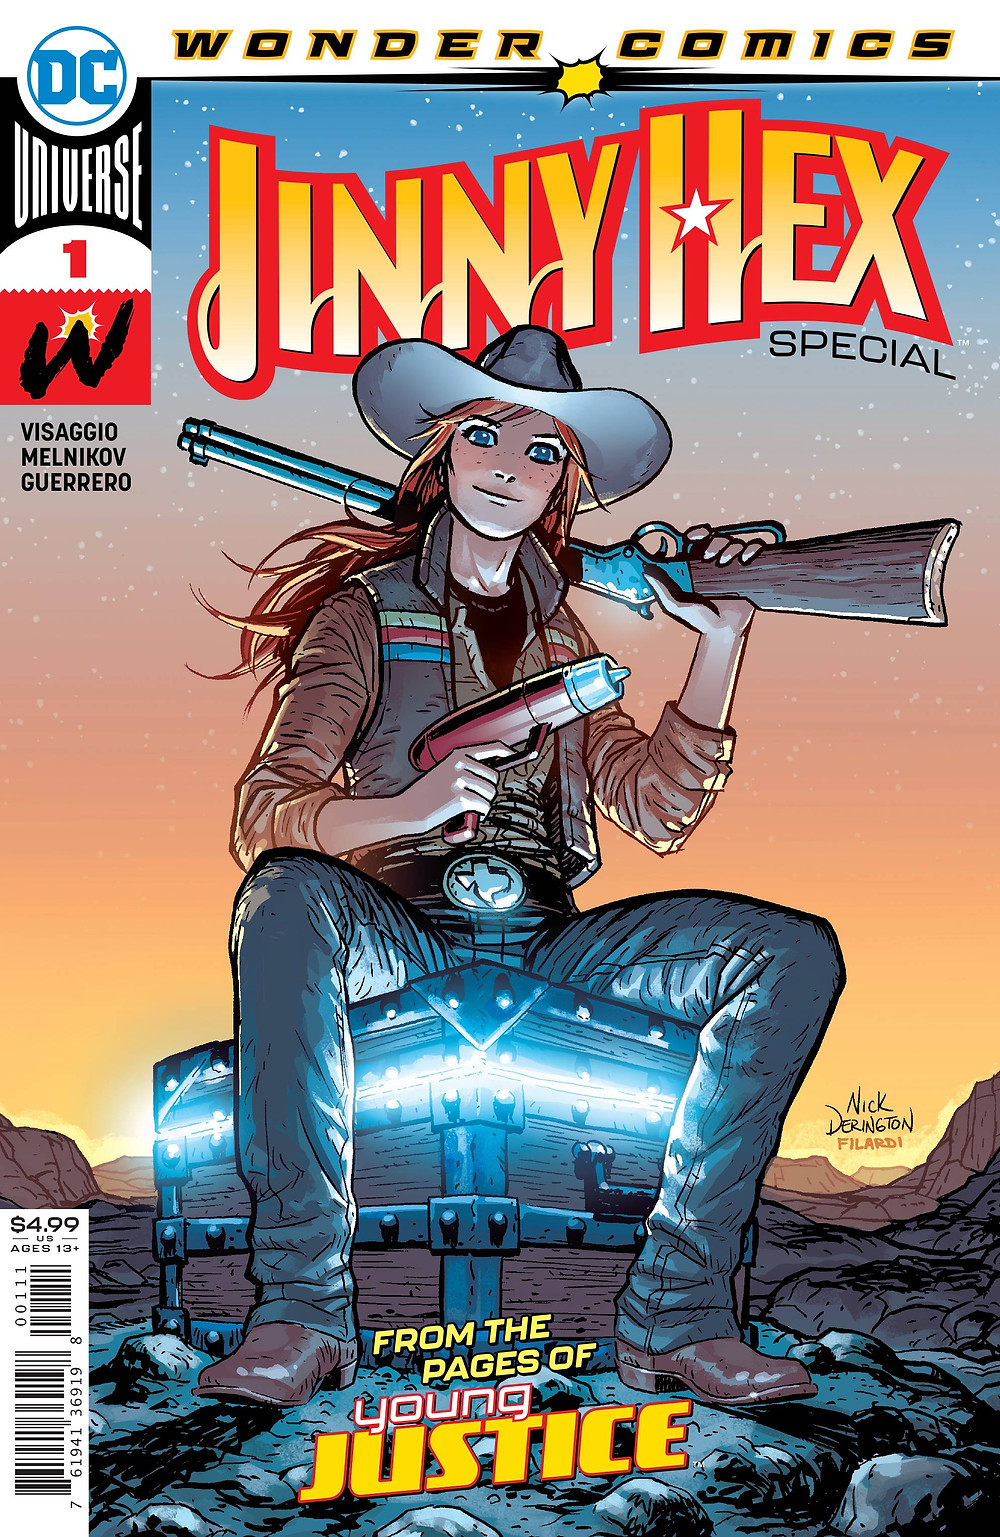 Jinny Hex Special #1 Cover. Art by Nick Derrington (c) DC Comics